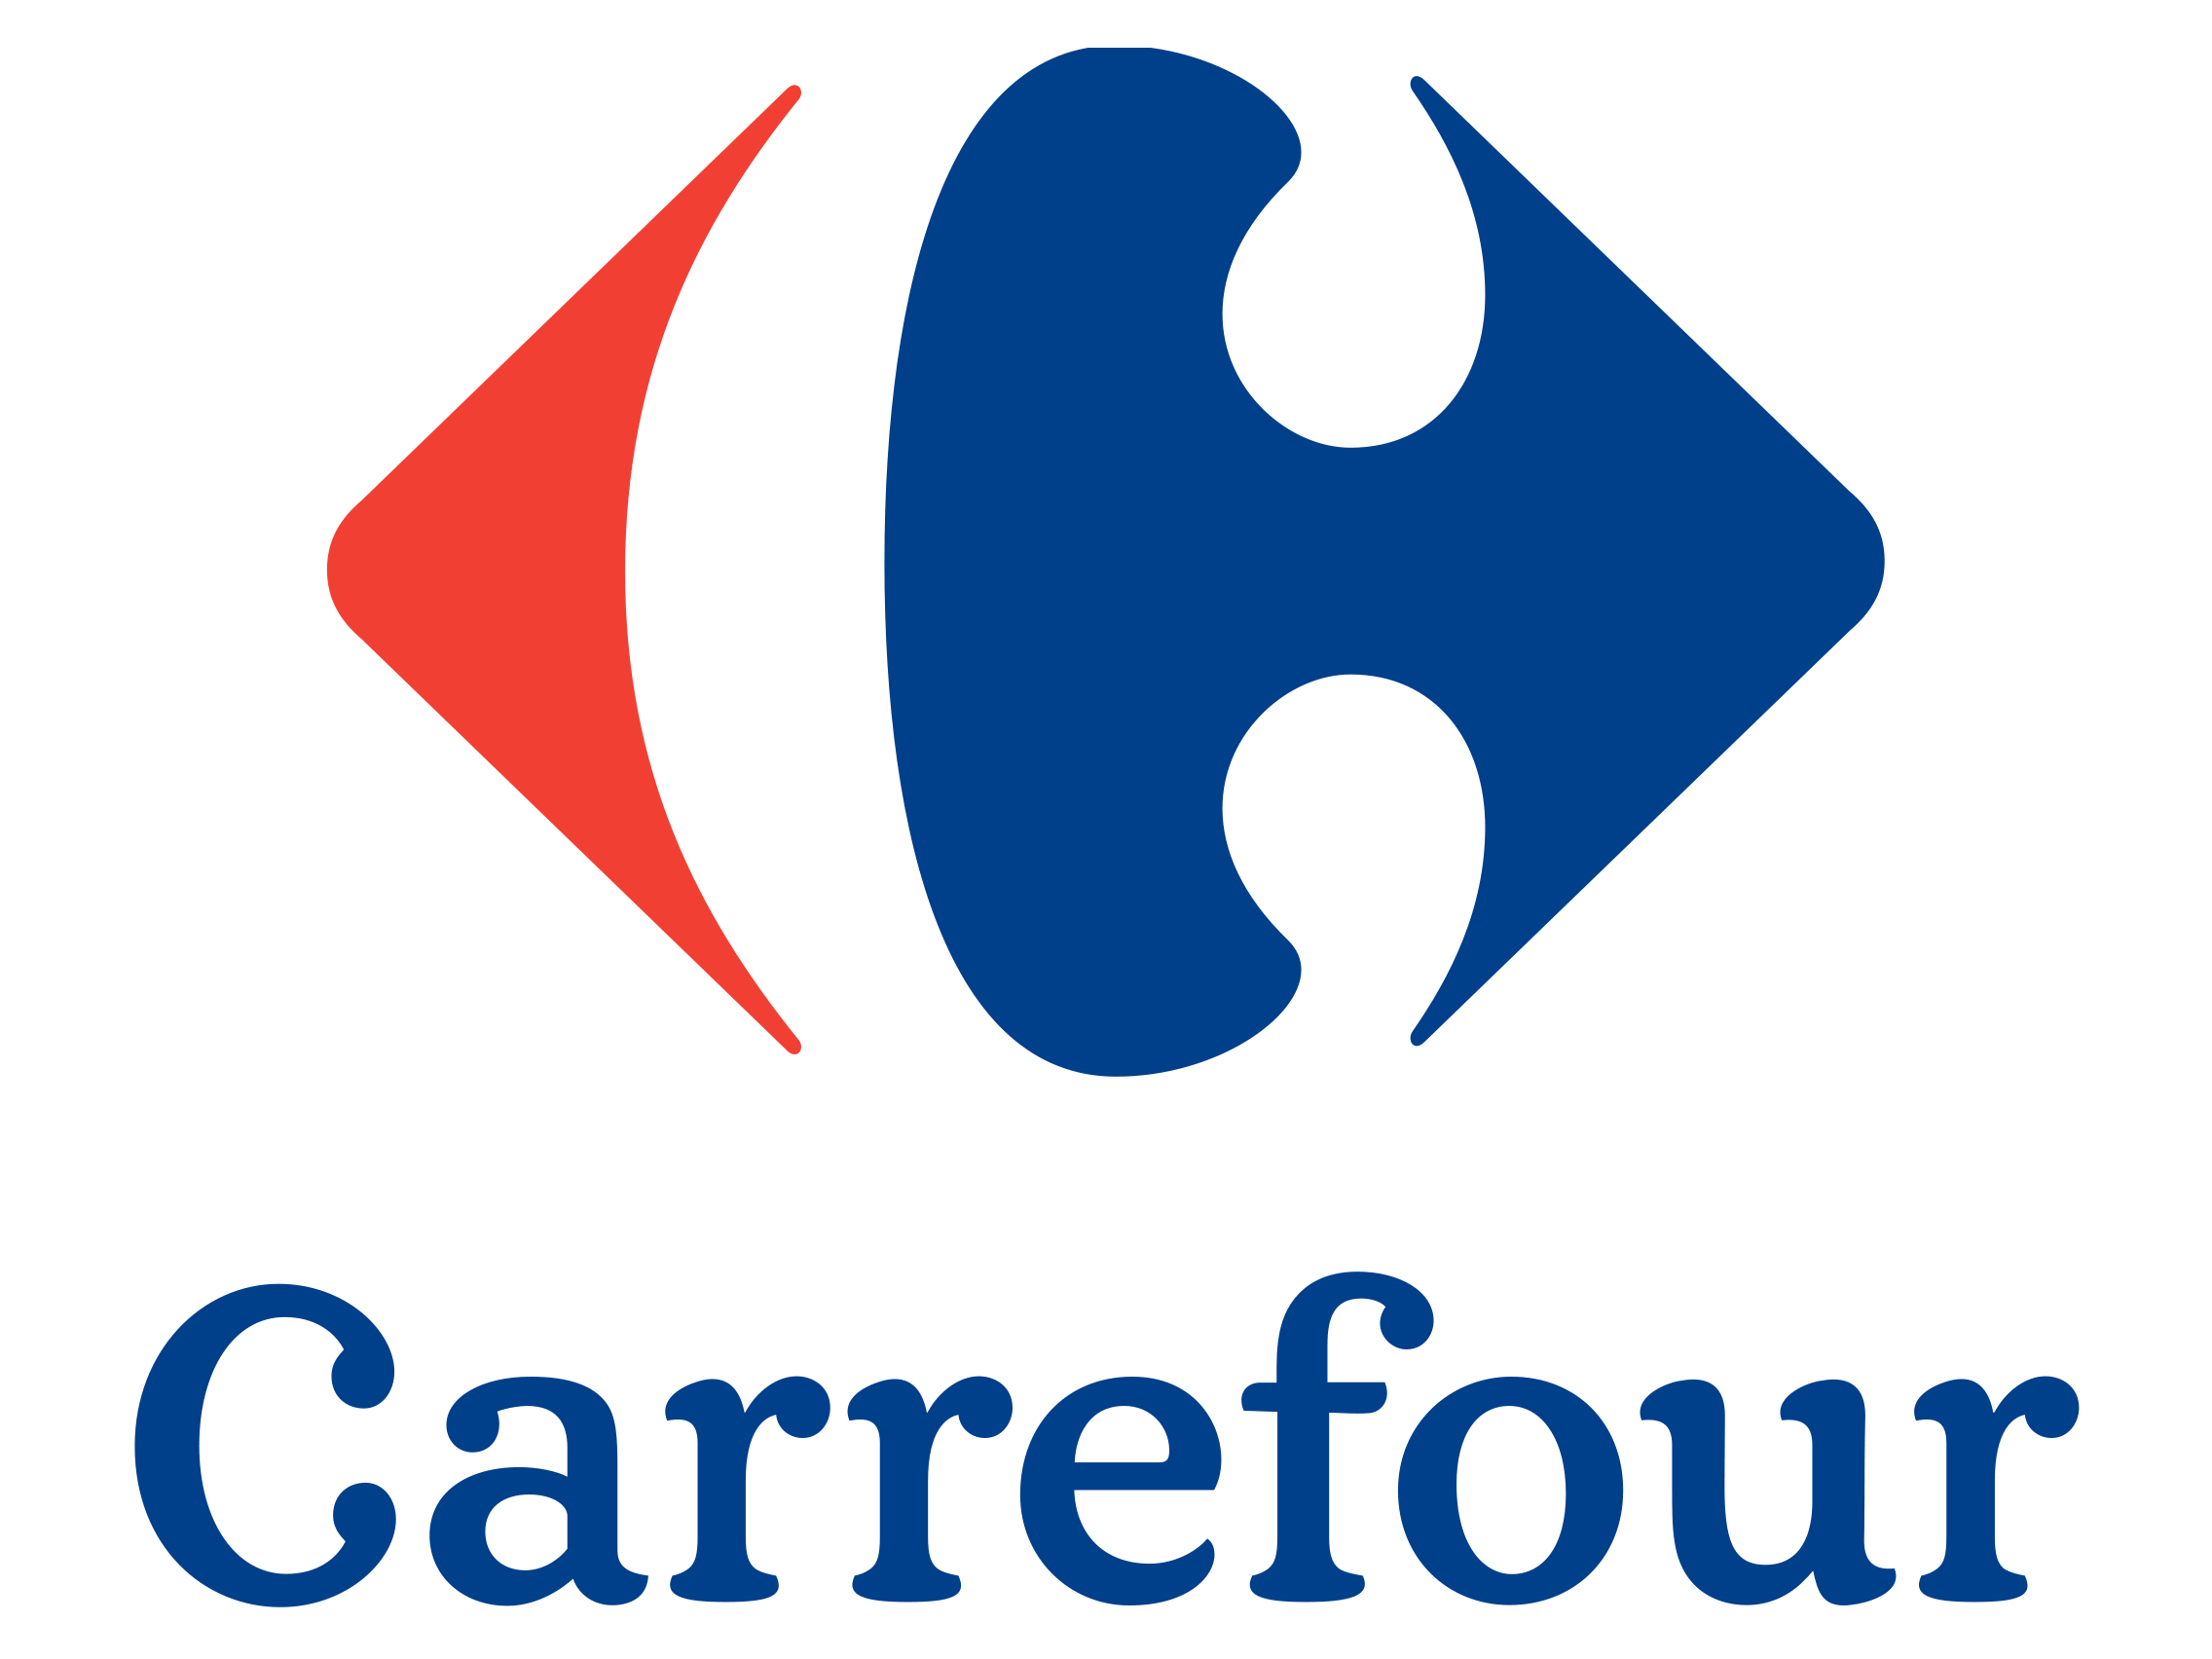 Carrefour Logo furthermore After Sbi Lic Housing Fin Offers Home Loans At 8 4 2275783 also What Is On Free To Air Saorview furthermore Elon Musk Shares What S Next Tesla Stock Price Jumps N724406 together with World Bank Logo. on cnbc logo